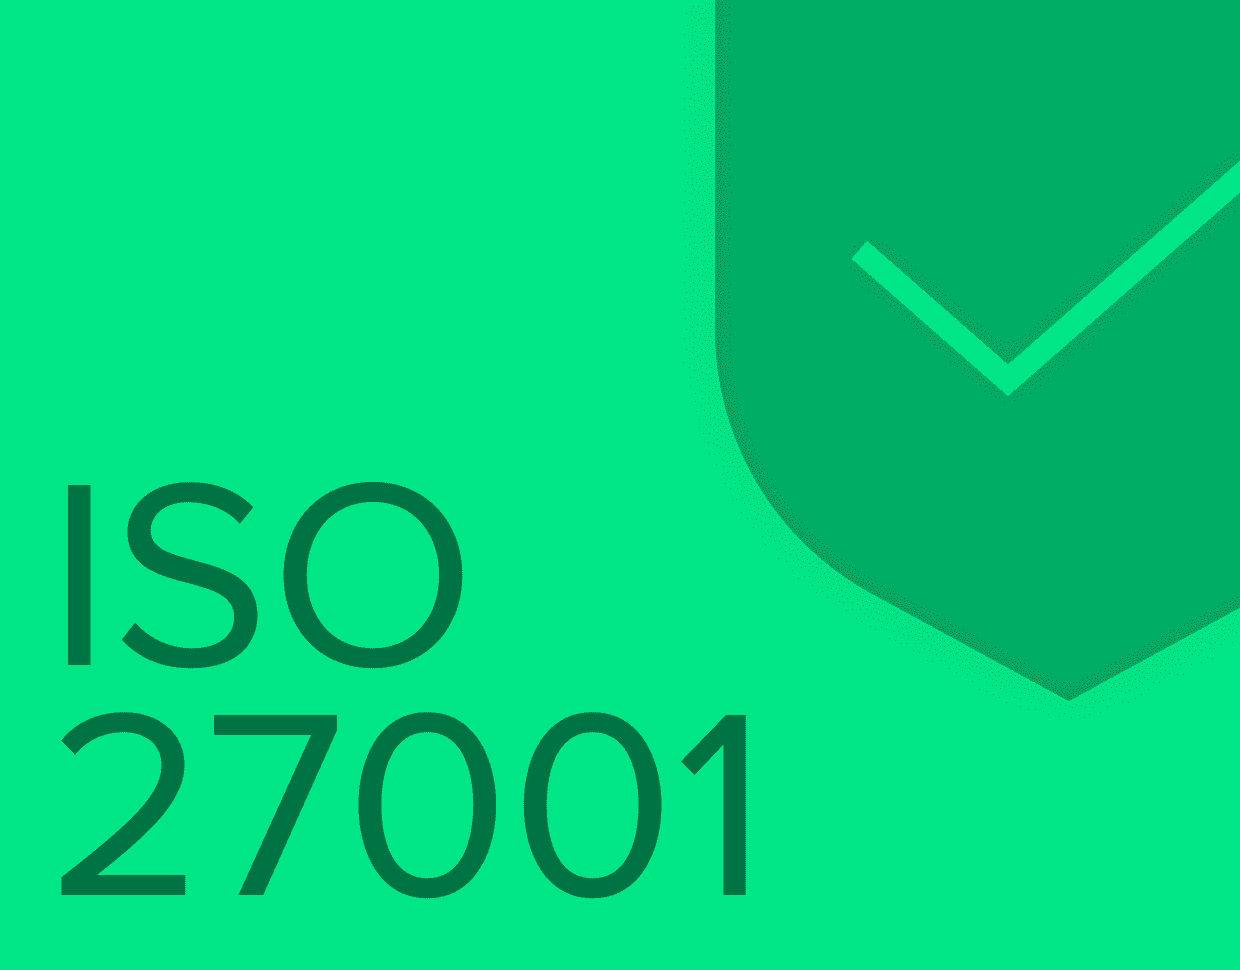 Star is now ISO 27001 certified. This will save you time, money and a lot of worries